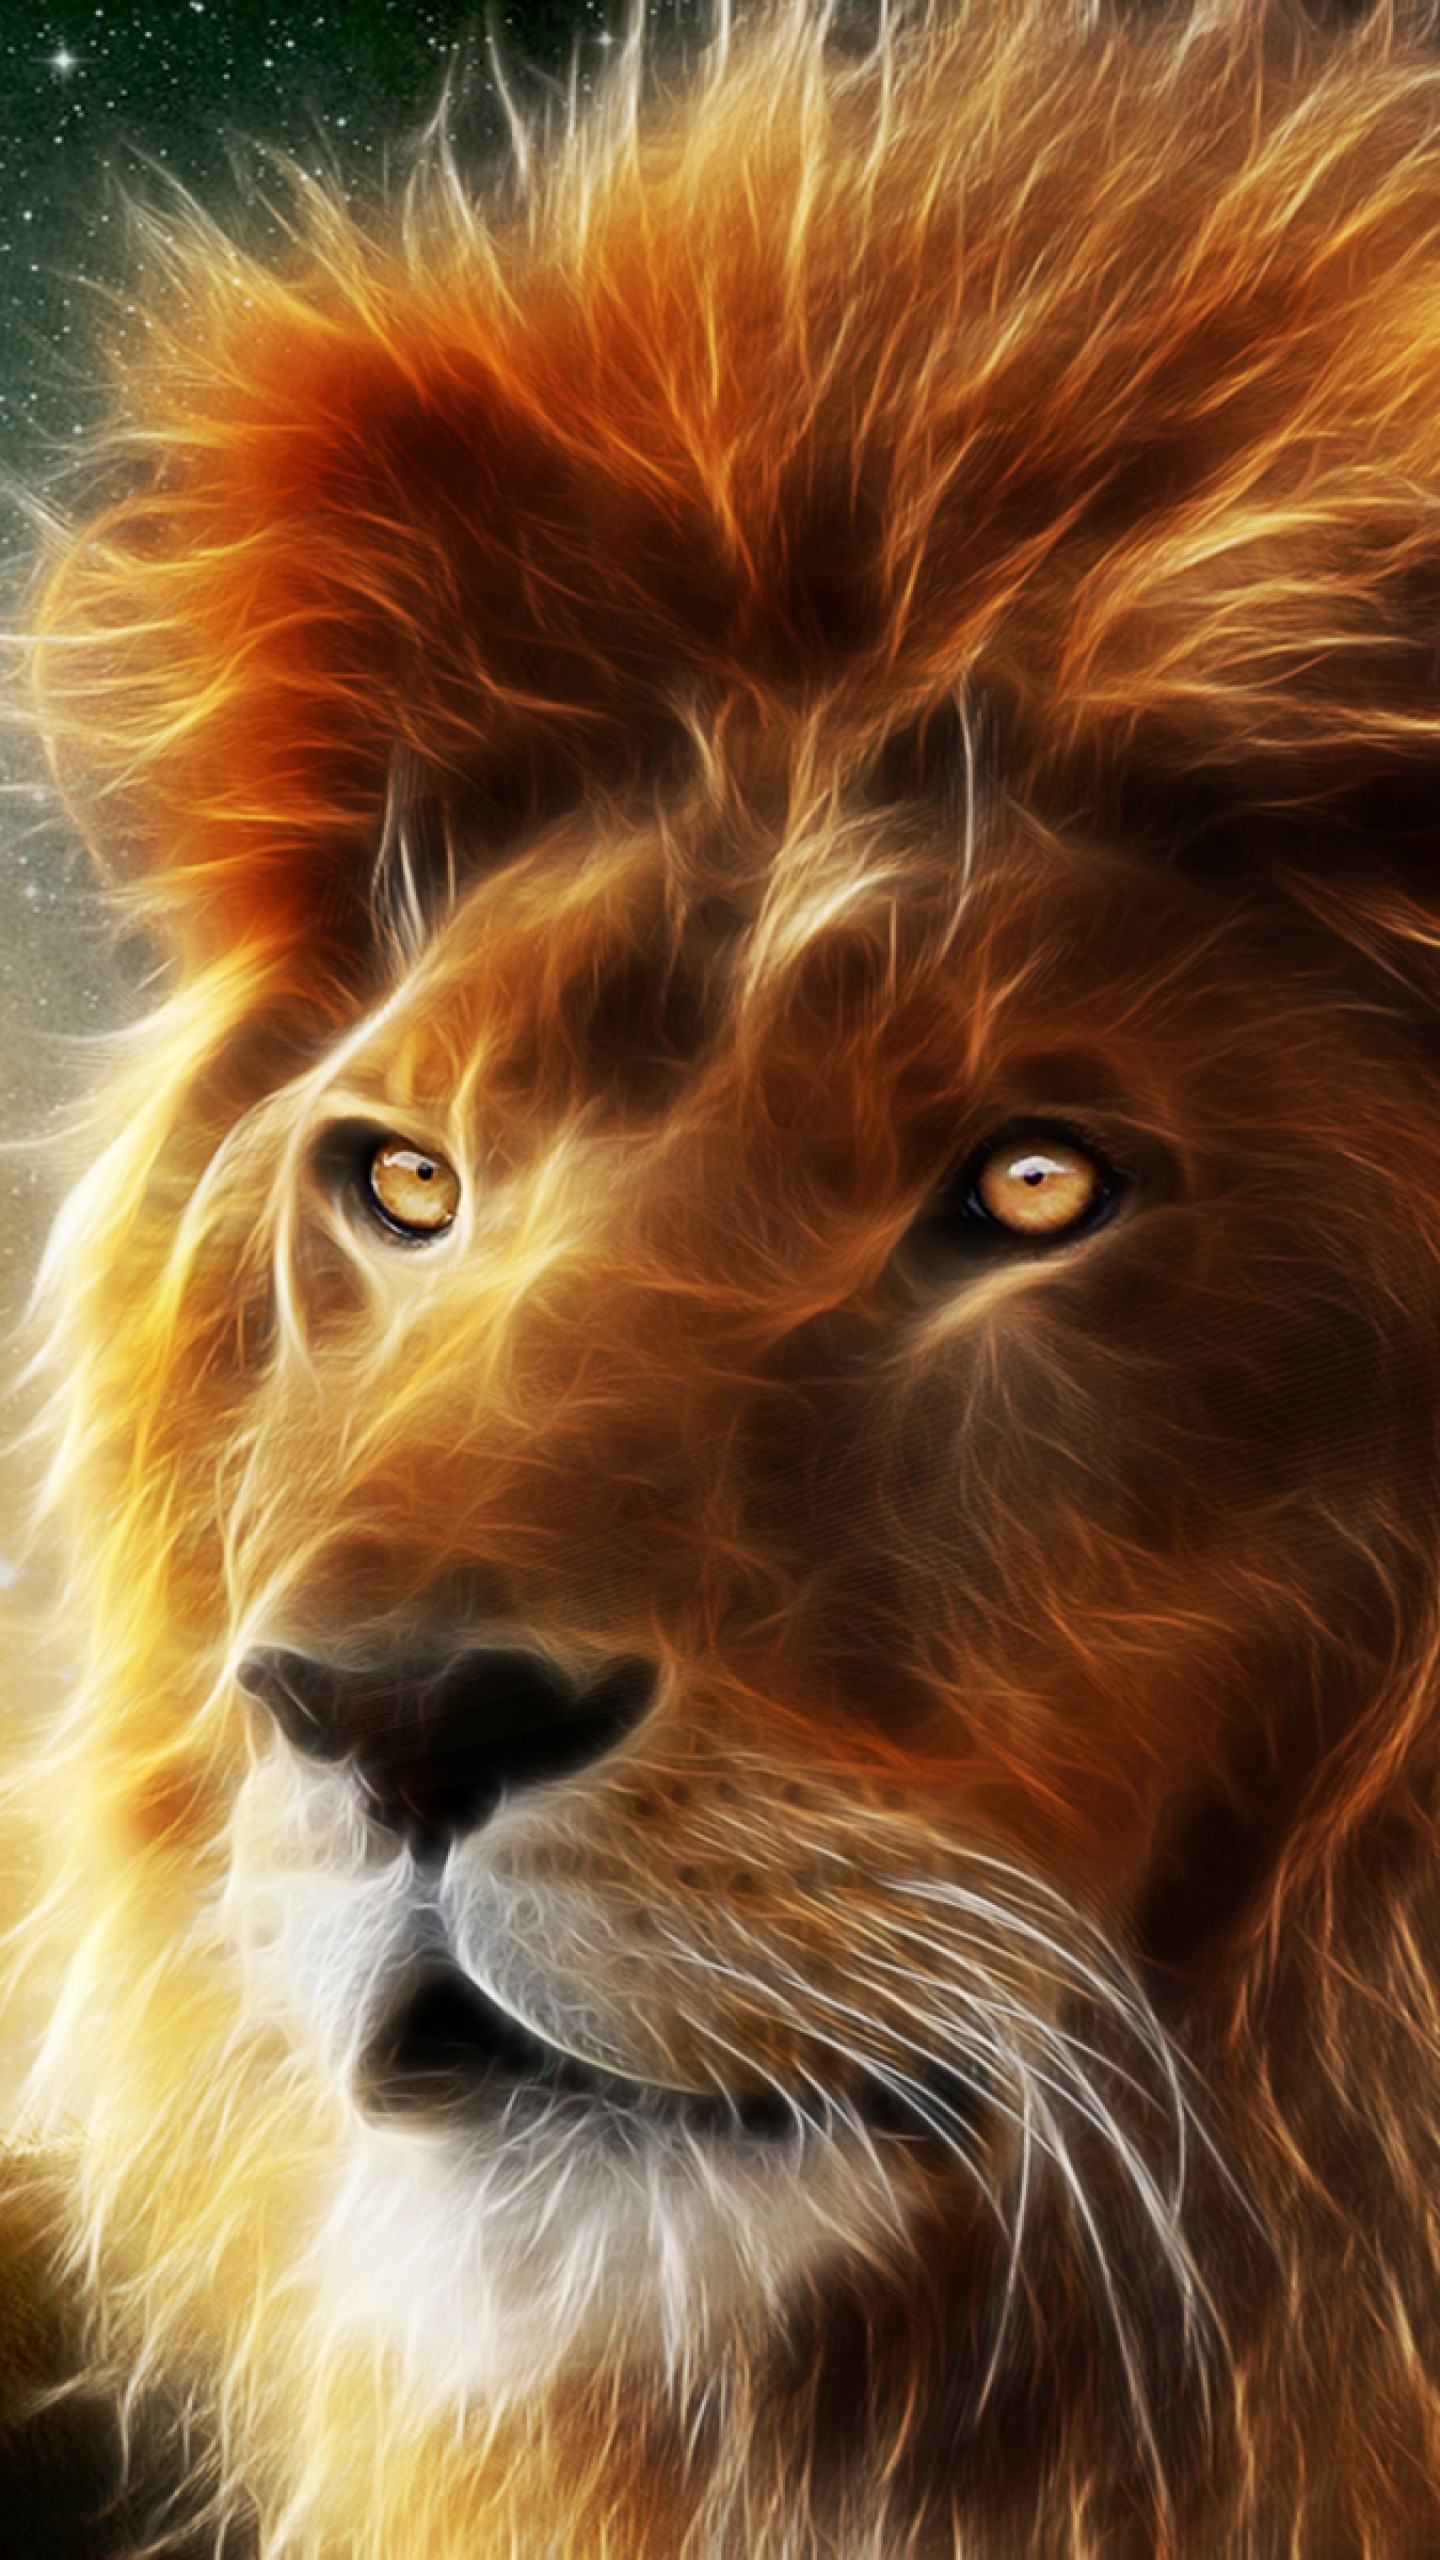 Lion Iphone Wallpaper 79 Images